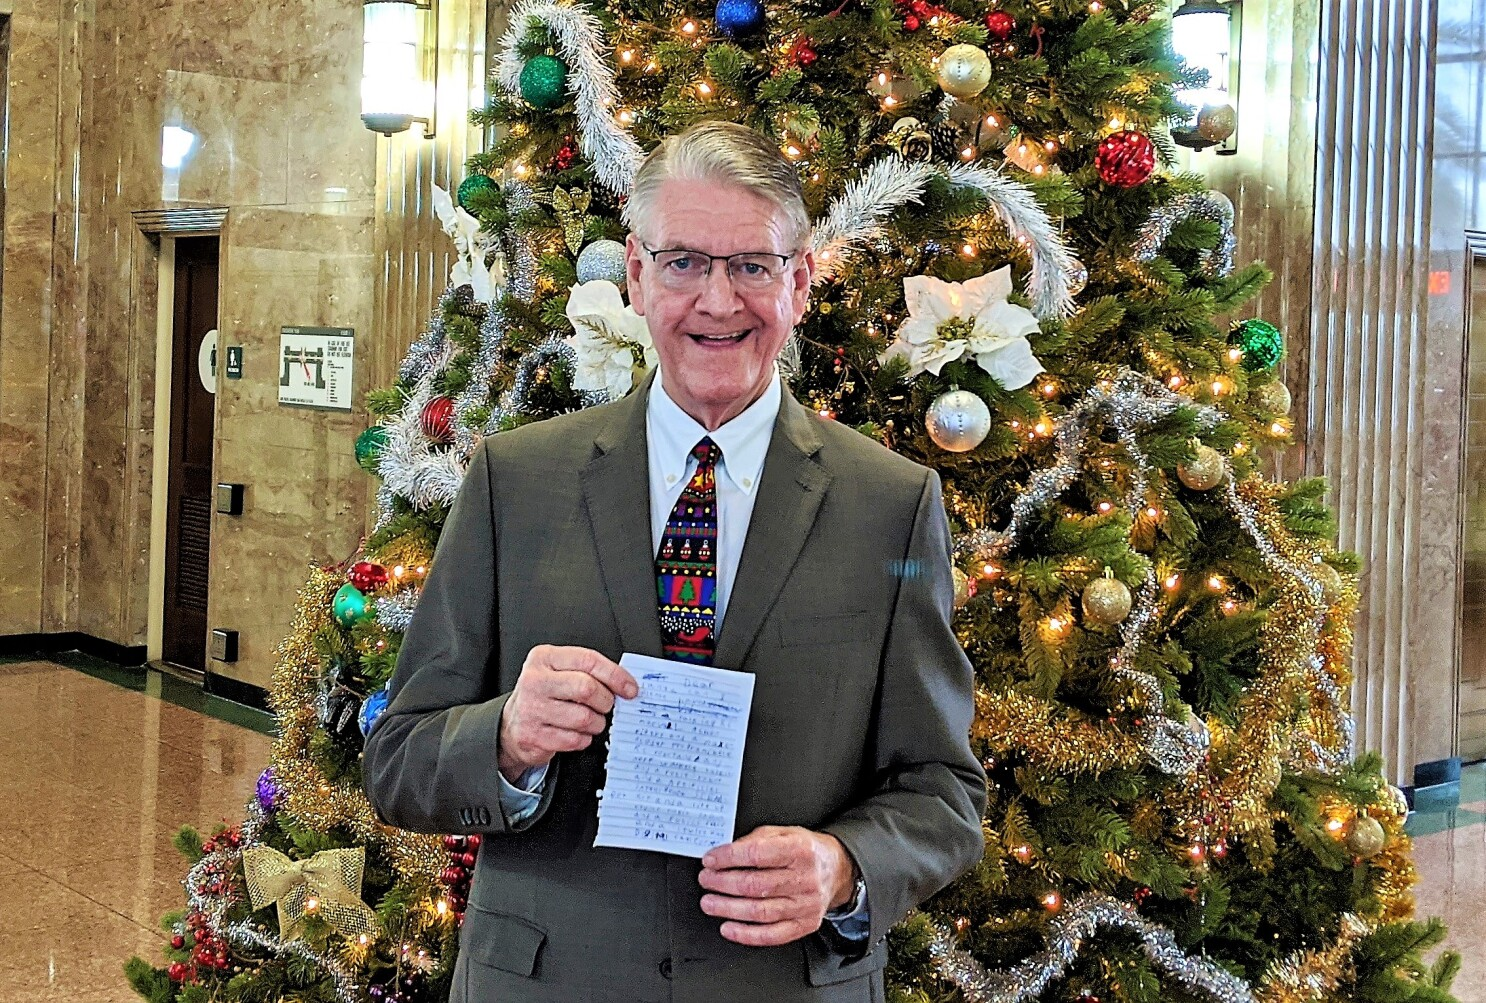 Mueller Christmas Sign Sandiego 2020 Column: Tax collector gets letter to Santa and El Cajon man vies